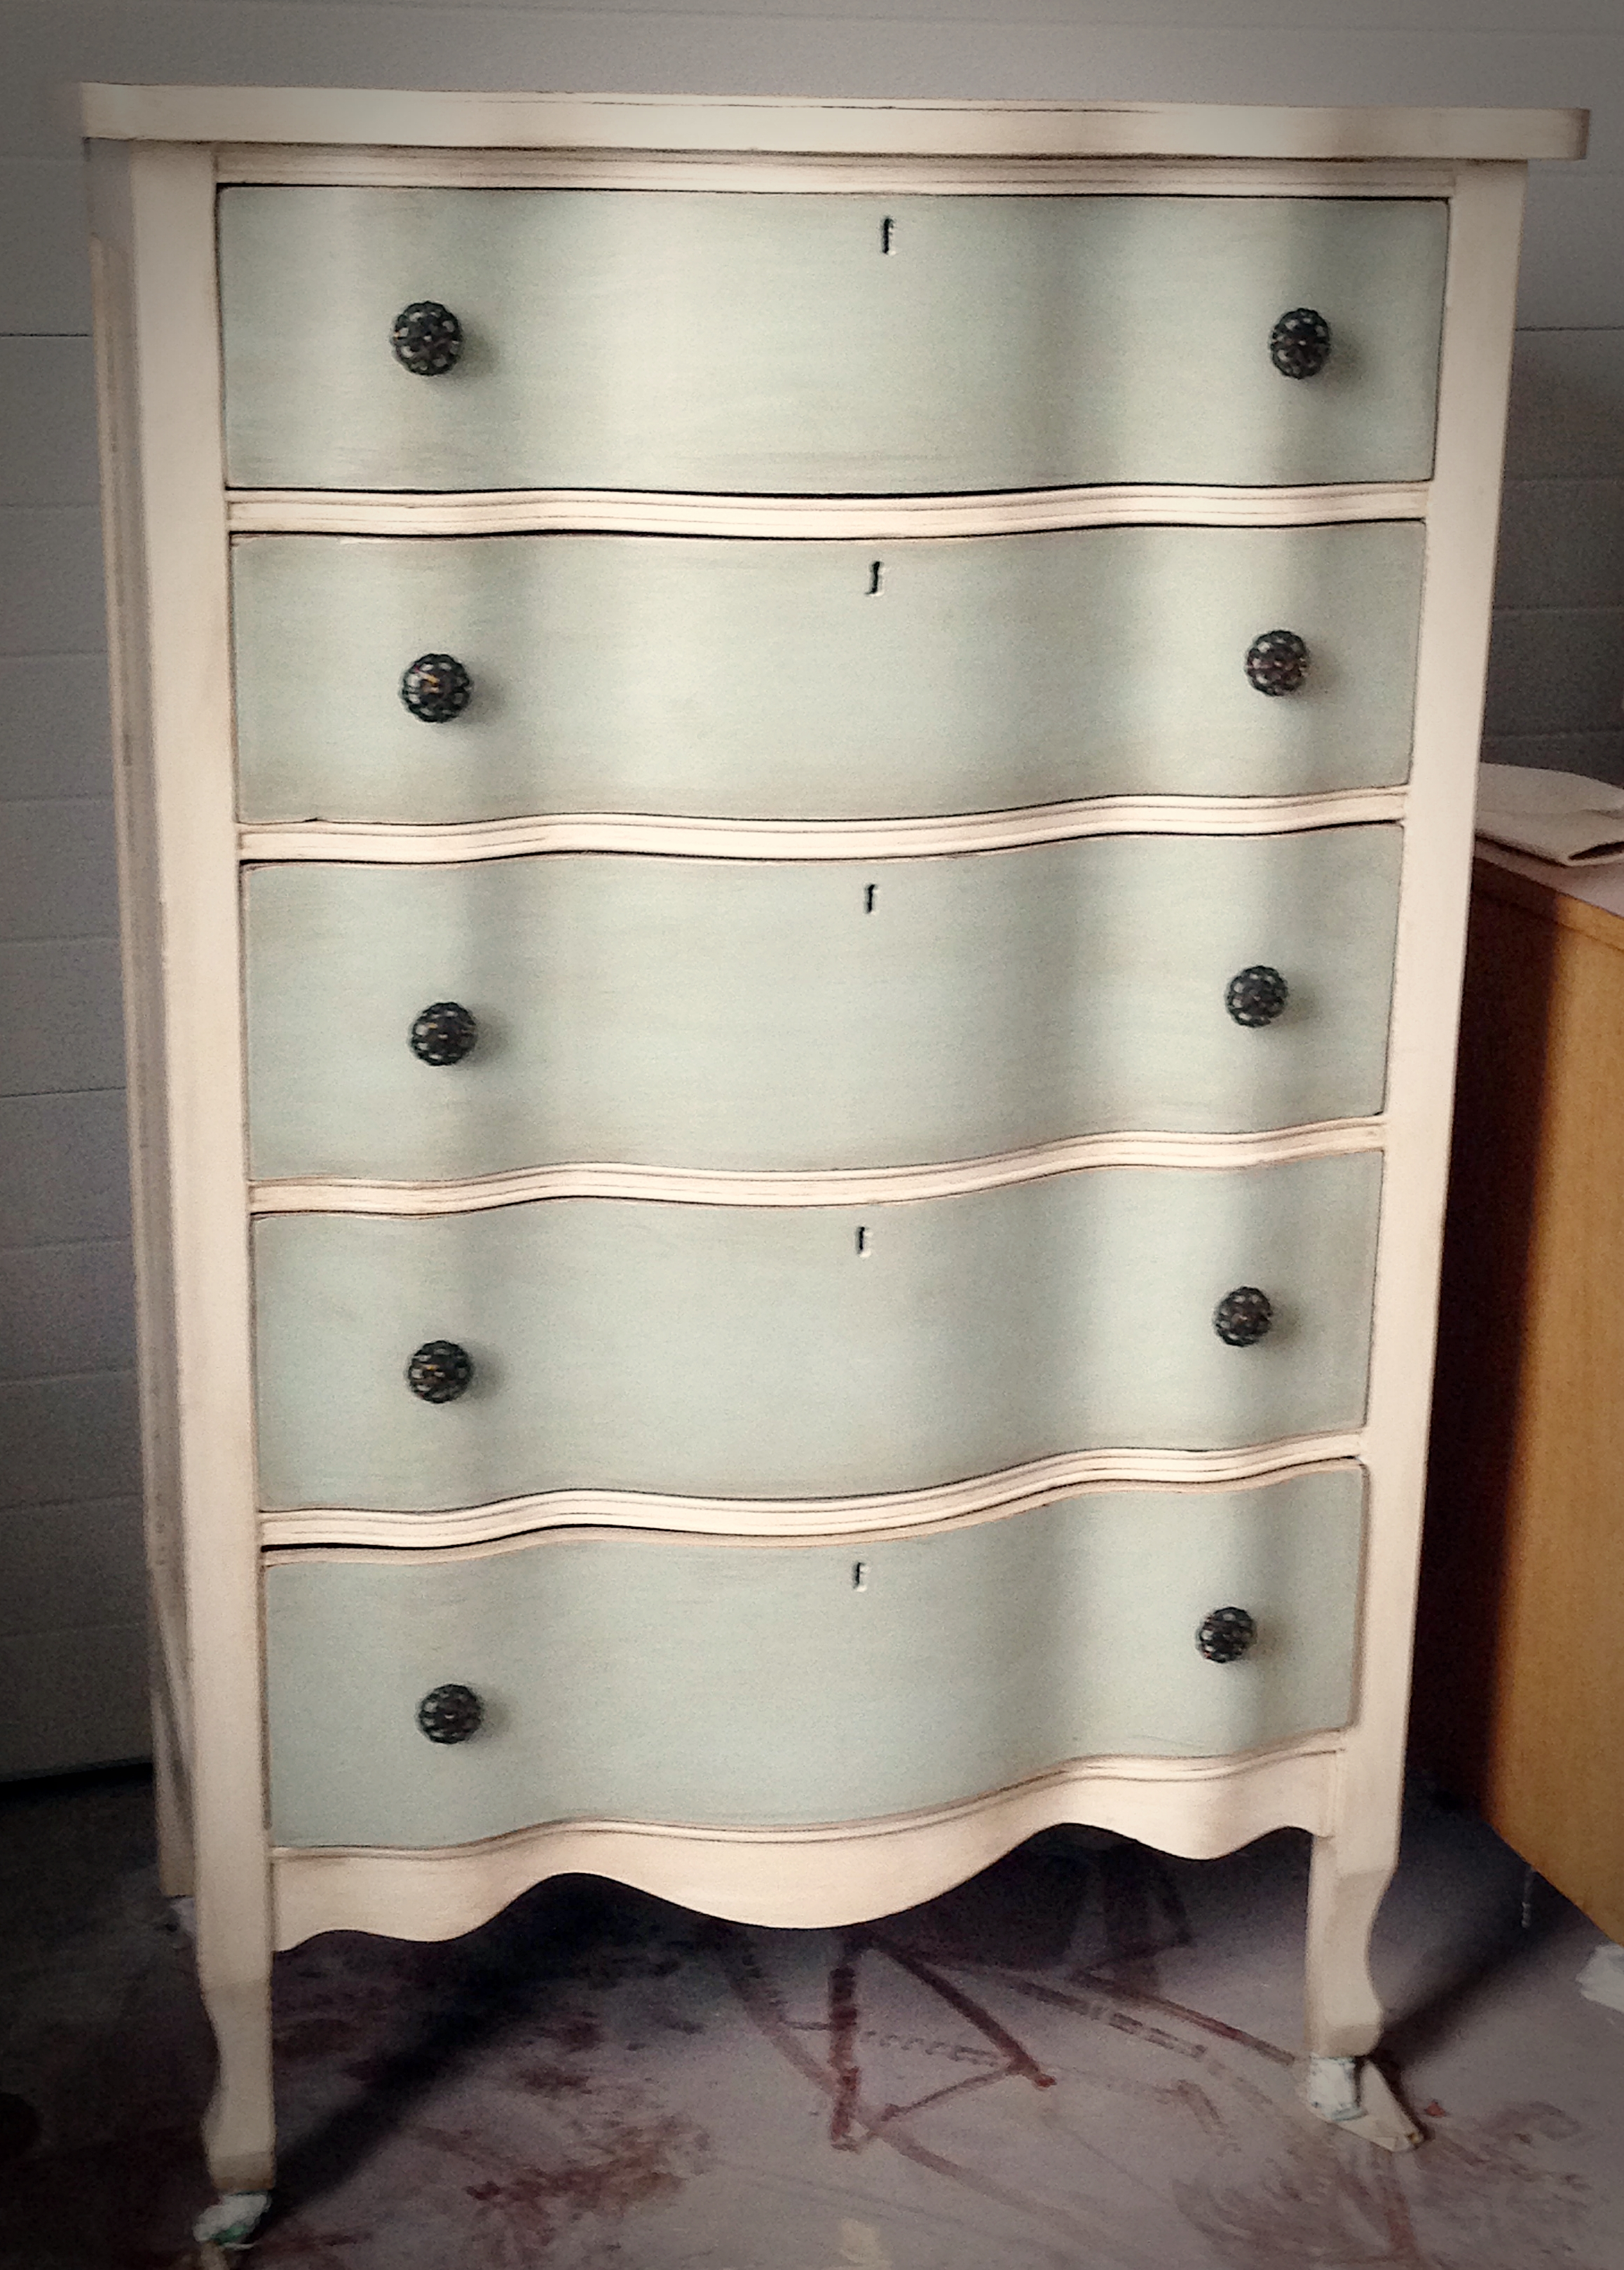 cabinets mirror dressers dresser marcelle bedroom storage white to furniture and image value item vintage city product change click